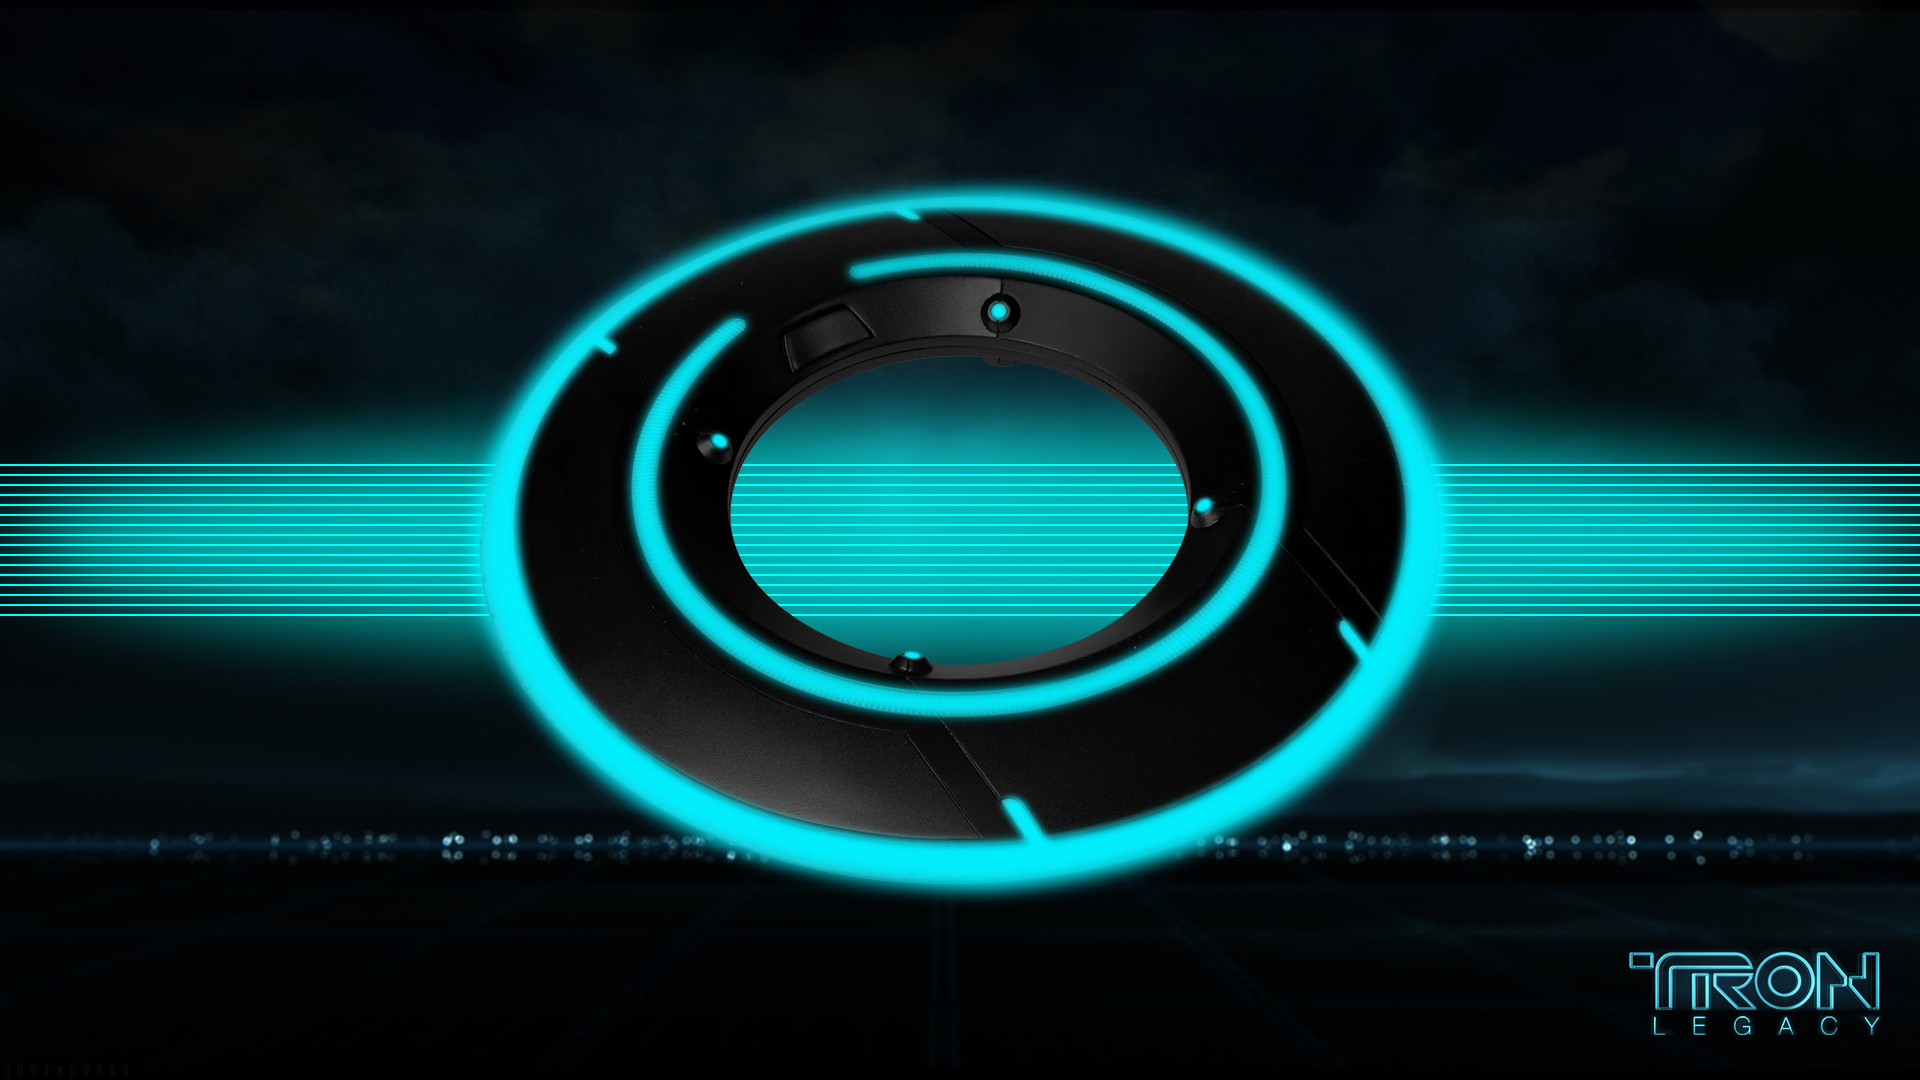 Tron Wallpapers 37 Wallpapers Adorable Wallpapers